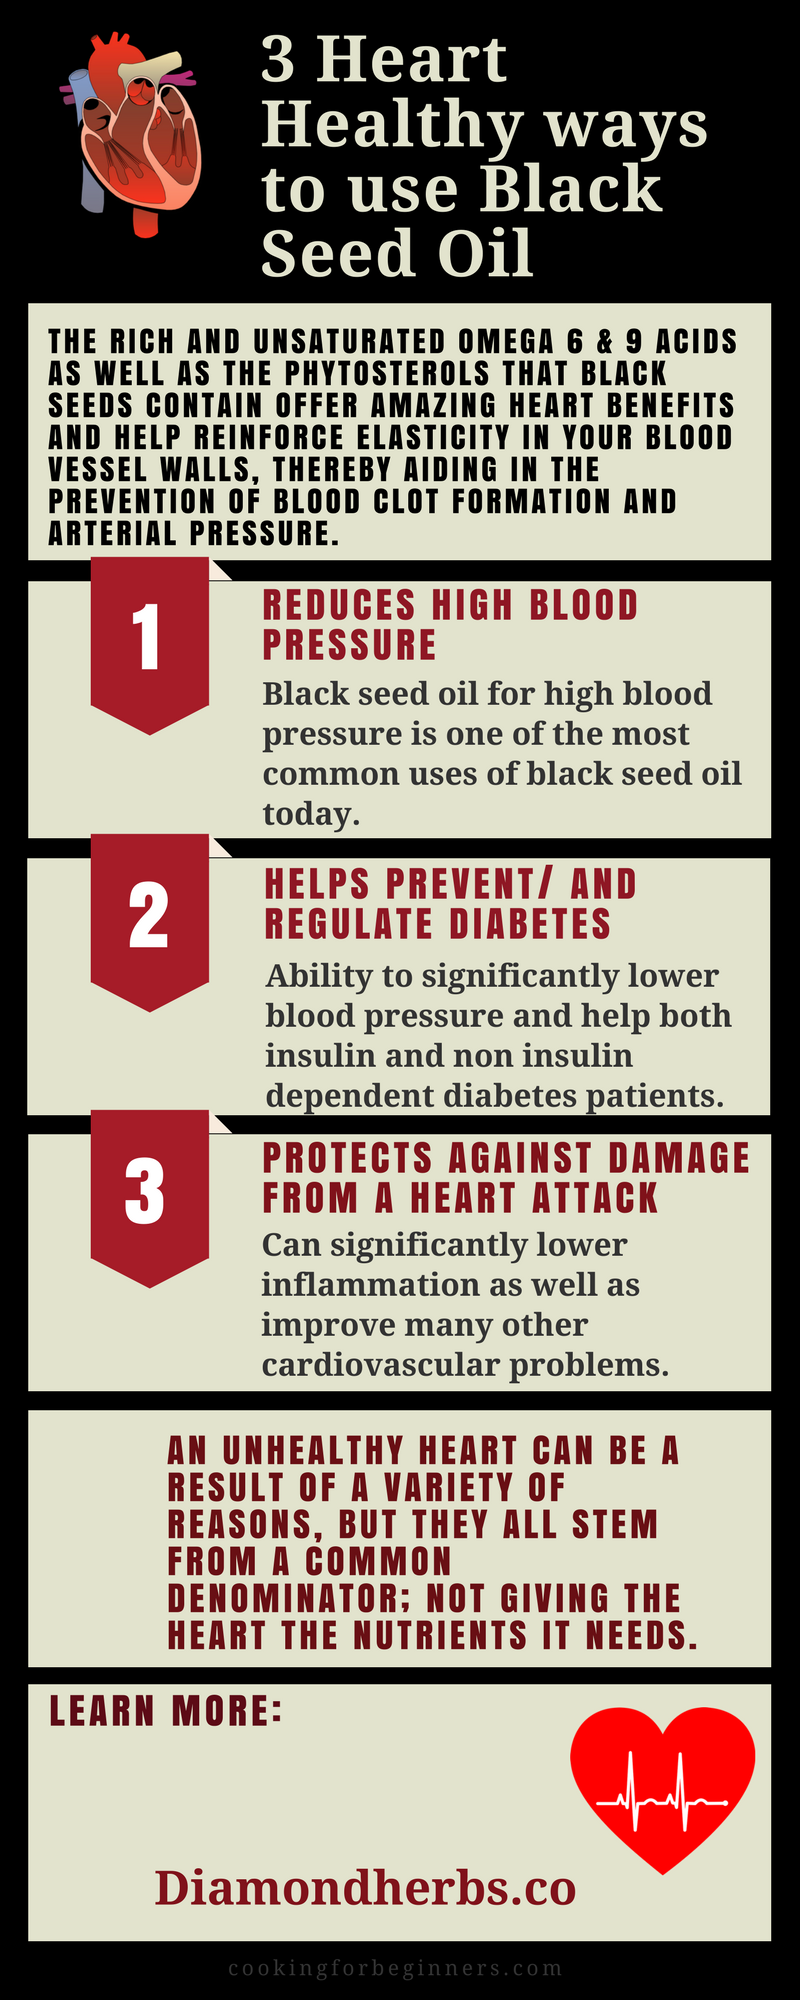 3 Amazing Heart Healthy Changes Using Black Seed Oil Black Seed Oil Benefits Black Seed Oil Black Coffee Benefits